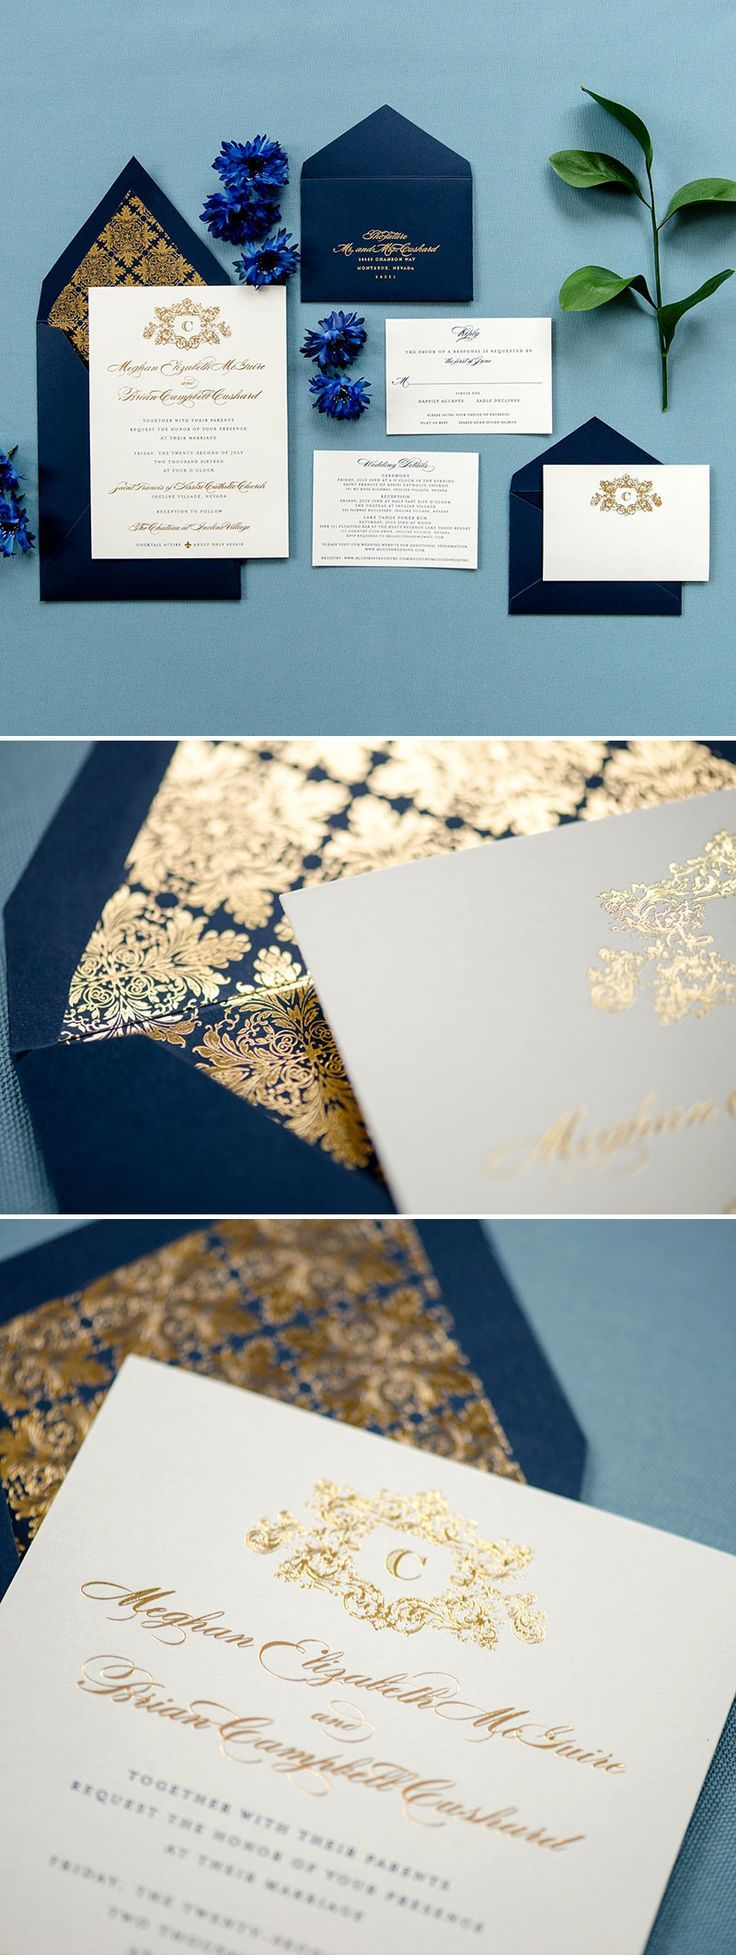 Regal wedding invitations from /engagingpapers/ || This 6″ x 9″ invitation is 2 ply featuring gold foil ink. The navy envelope lined in the gold foil pattern sets the tone upon opening.